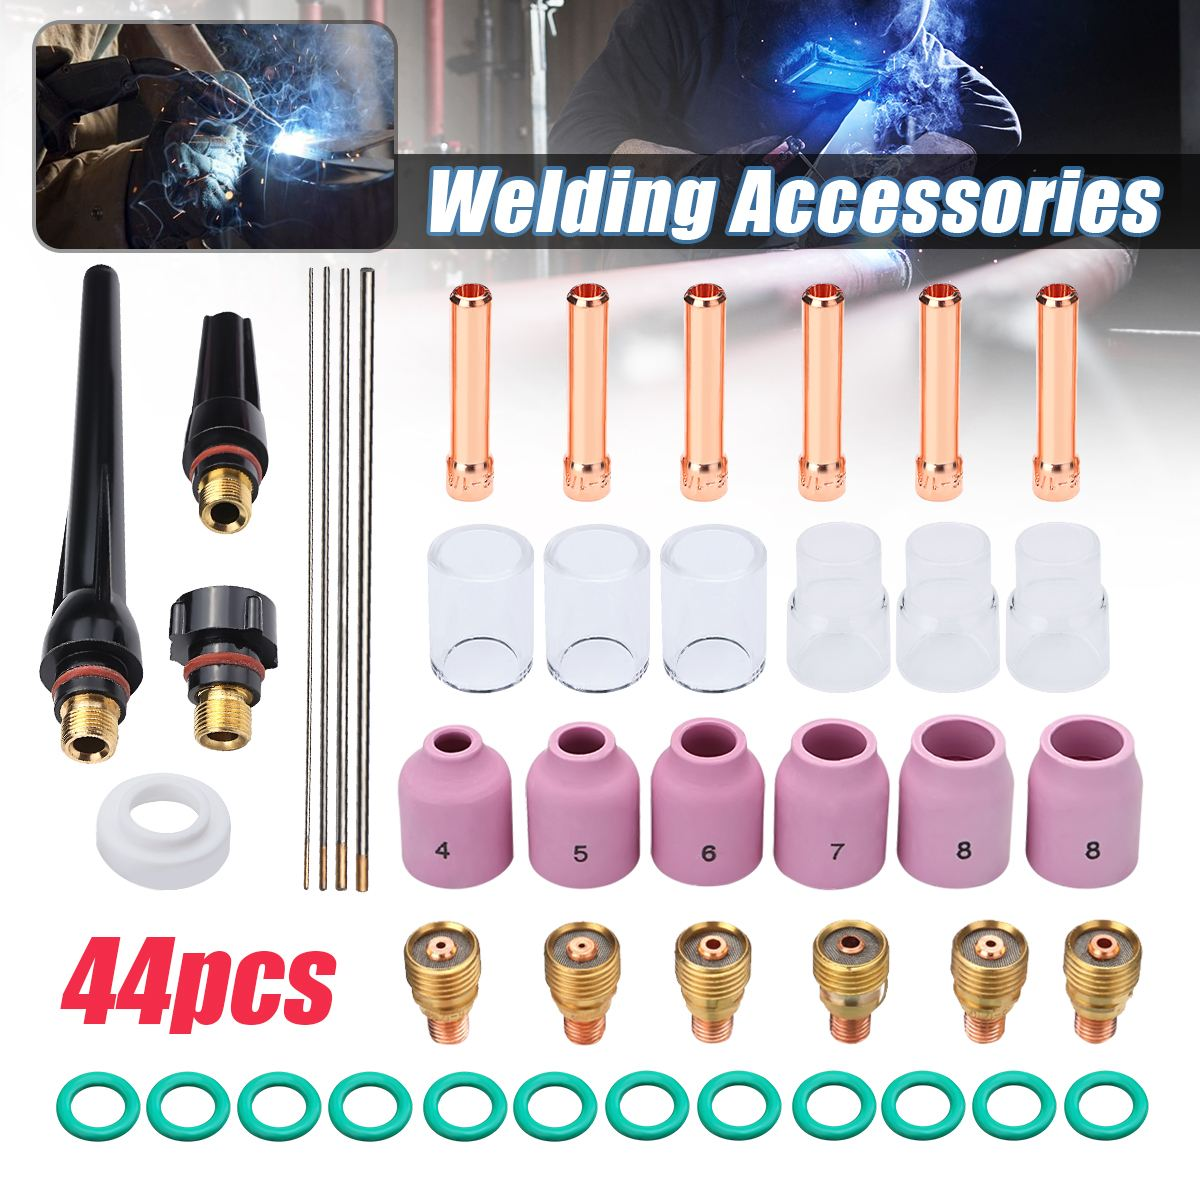 44Pcs Durable TIG Welding Torch Stubby Tig Gas Lens #10 Pyrex Glass Cup Kit For Tig WP-9/20/25 Series Mayitr Welding Accessories 15pcs tig welding accessories gas lens 12 pyrex cup welding torch kit for 1 16 wp 9 20 25 series